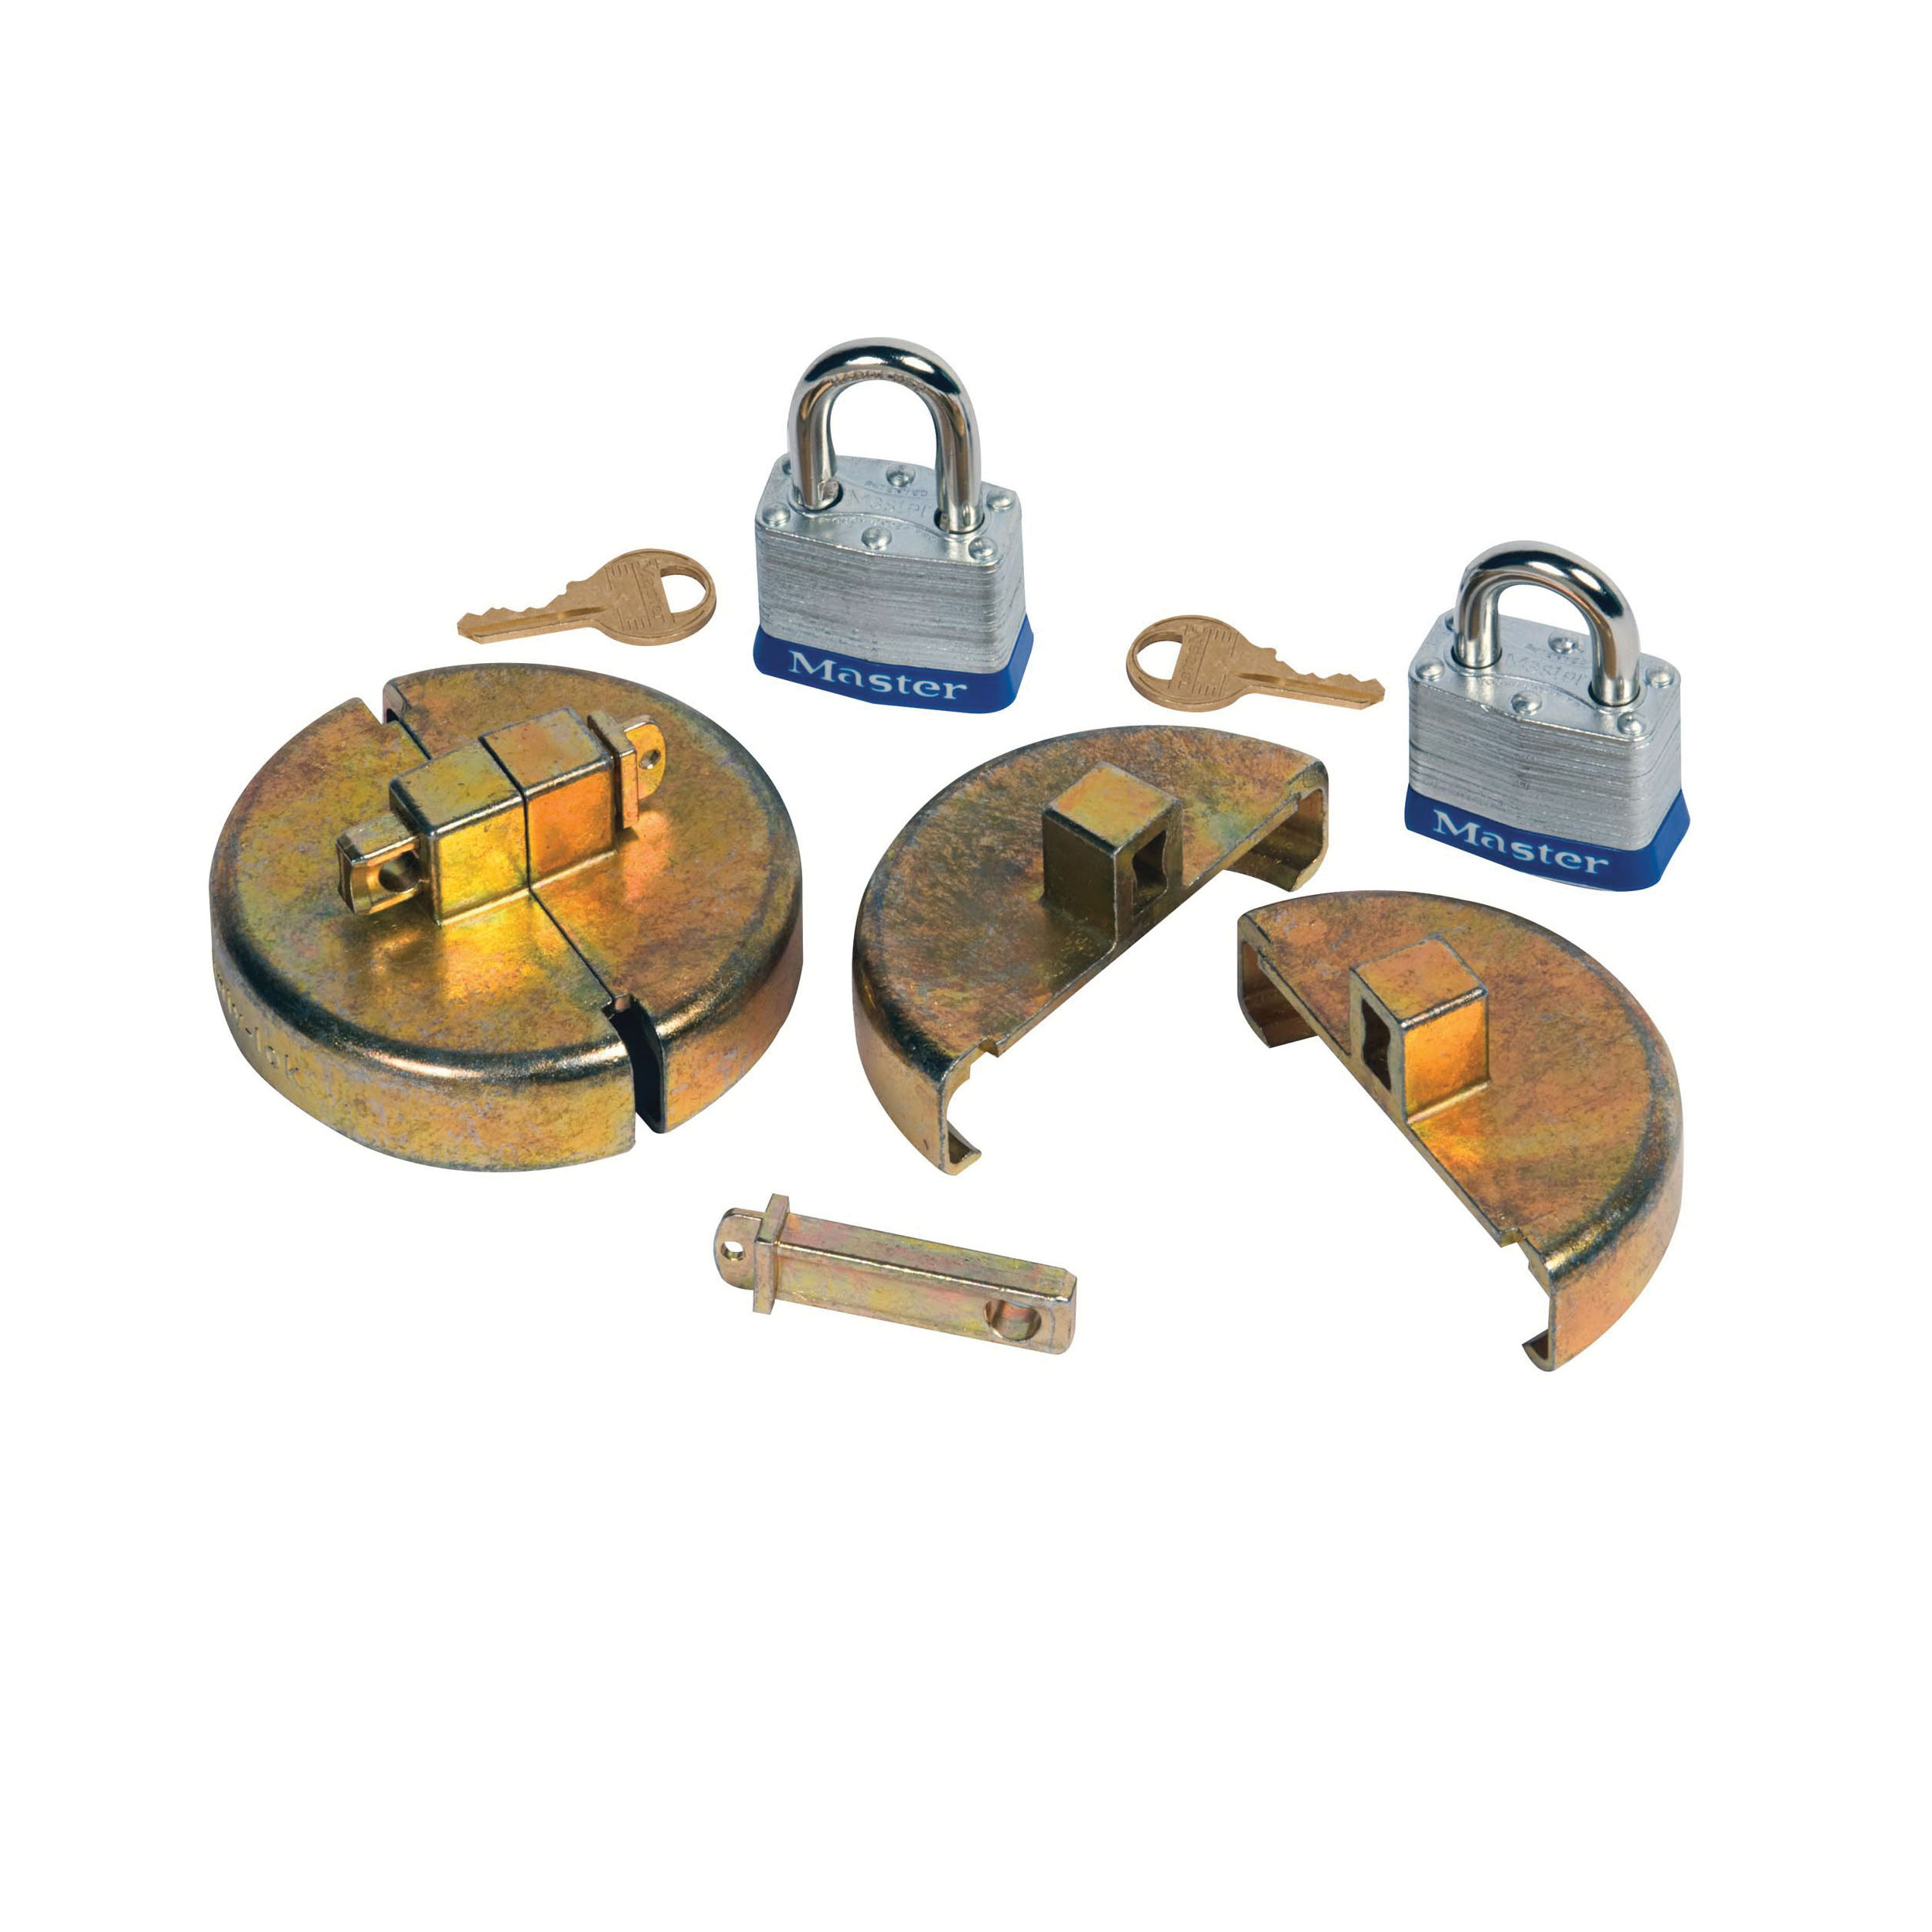 Master Lock® 175LH Safety Padlock With 2-1/4 in Shackle, 5/16 in Shackle, Brass Body, Brass, 4-Digit Dialing Locking